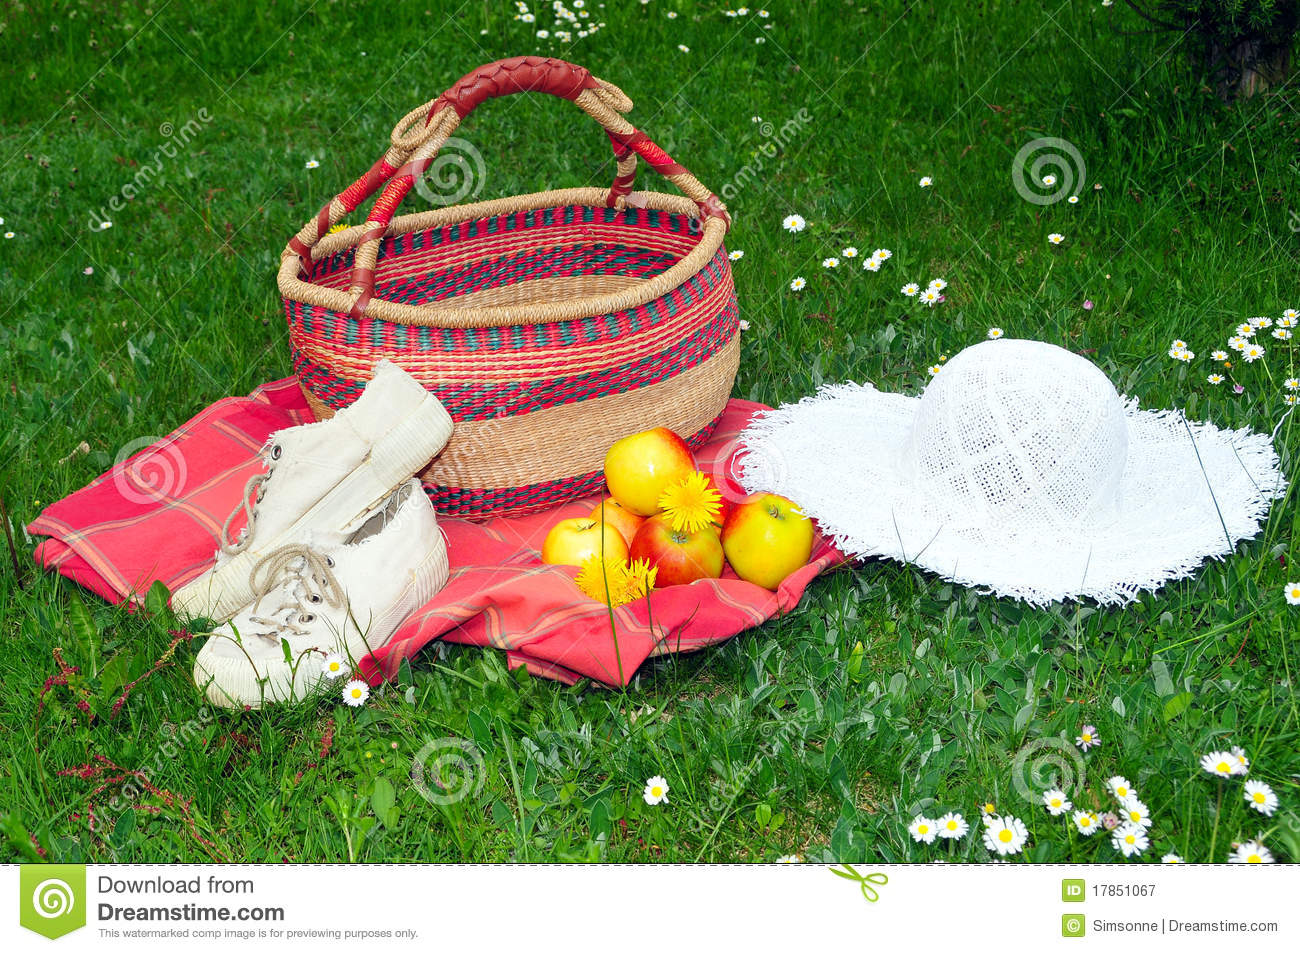 Meadow Picnic Garden Hat Royalty Free Stock Photography